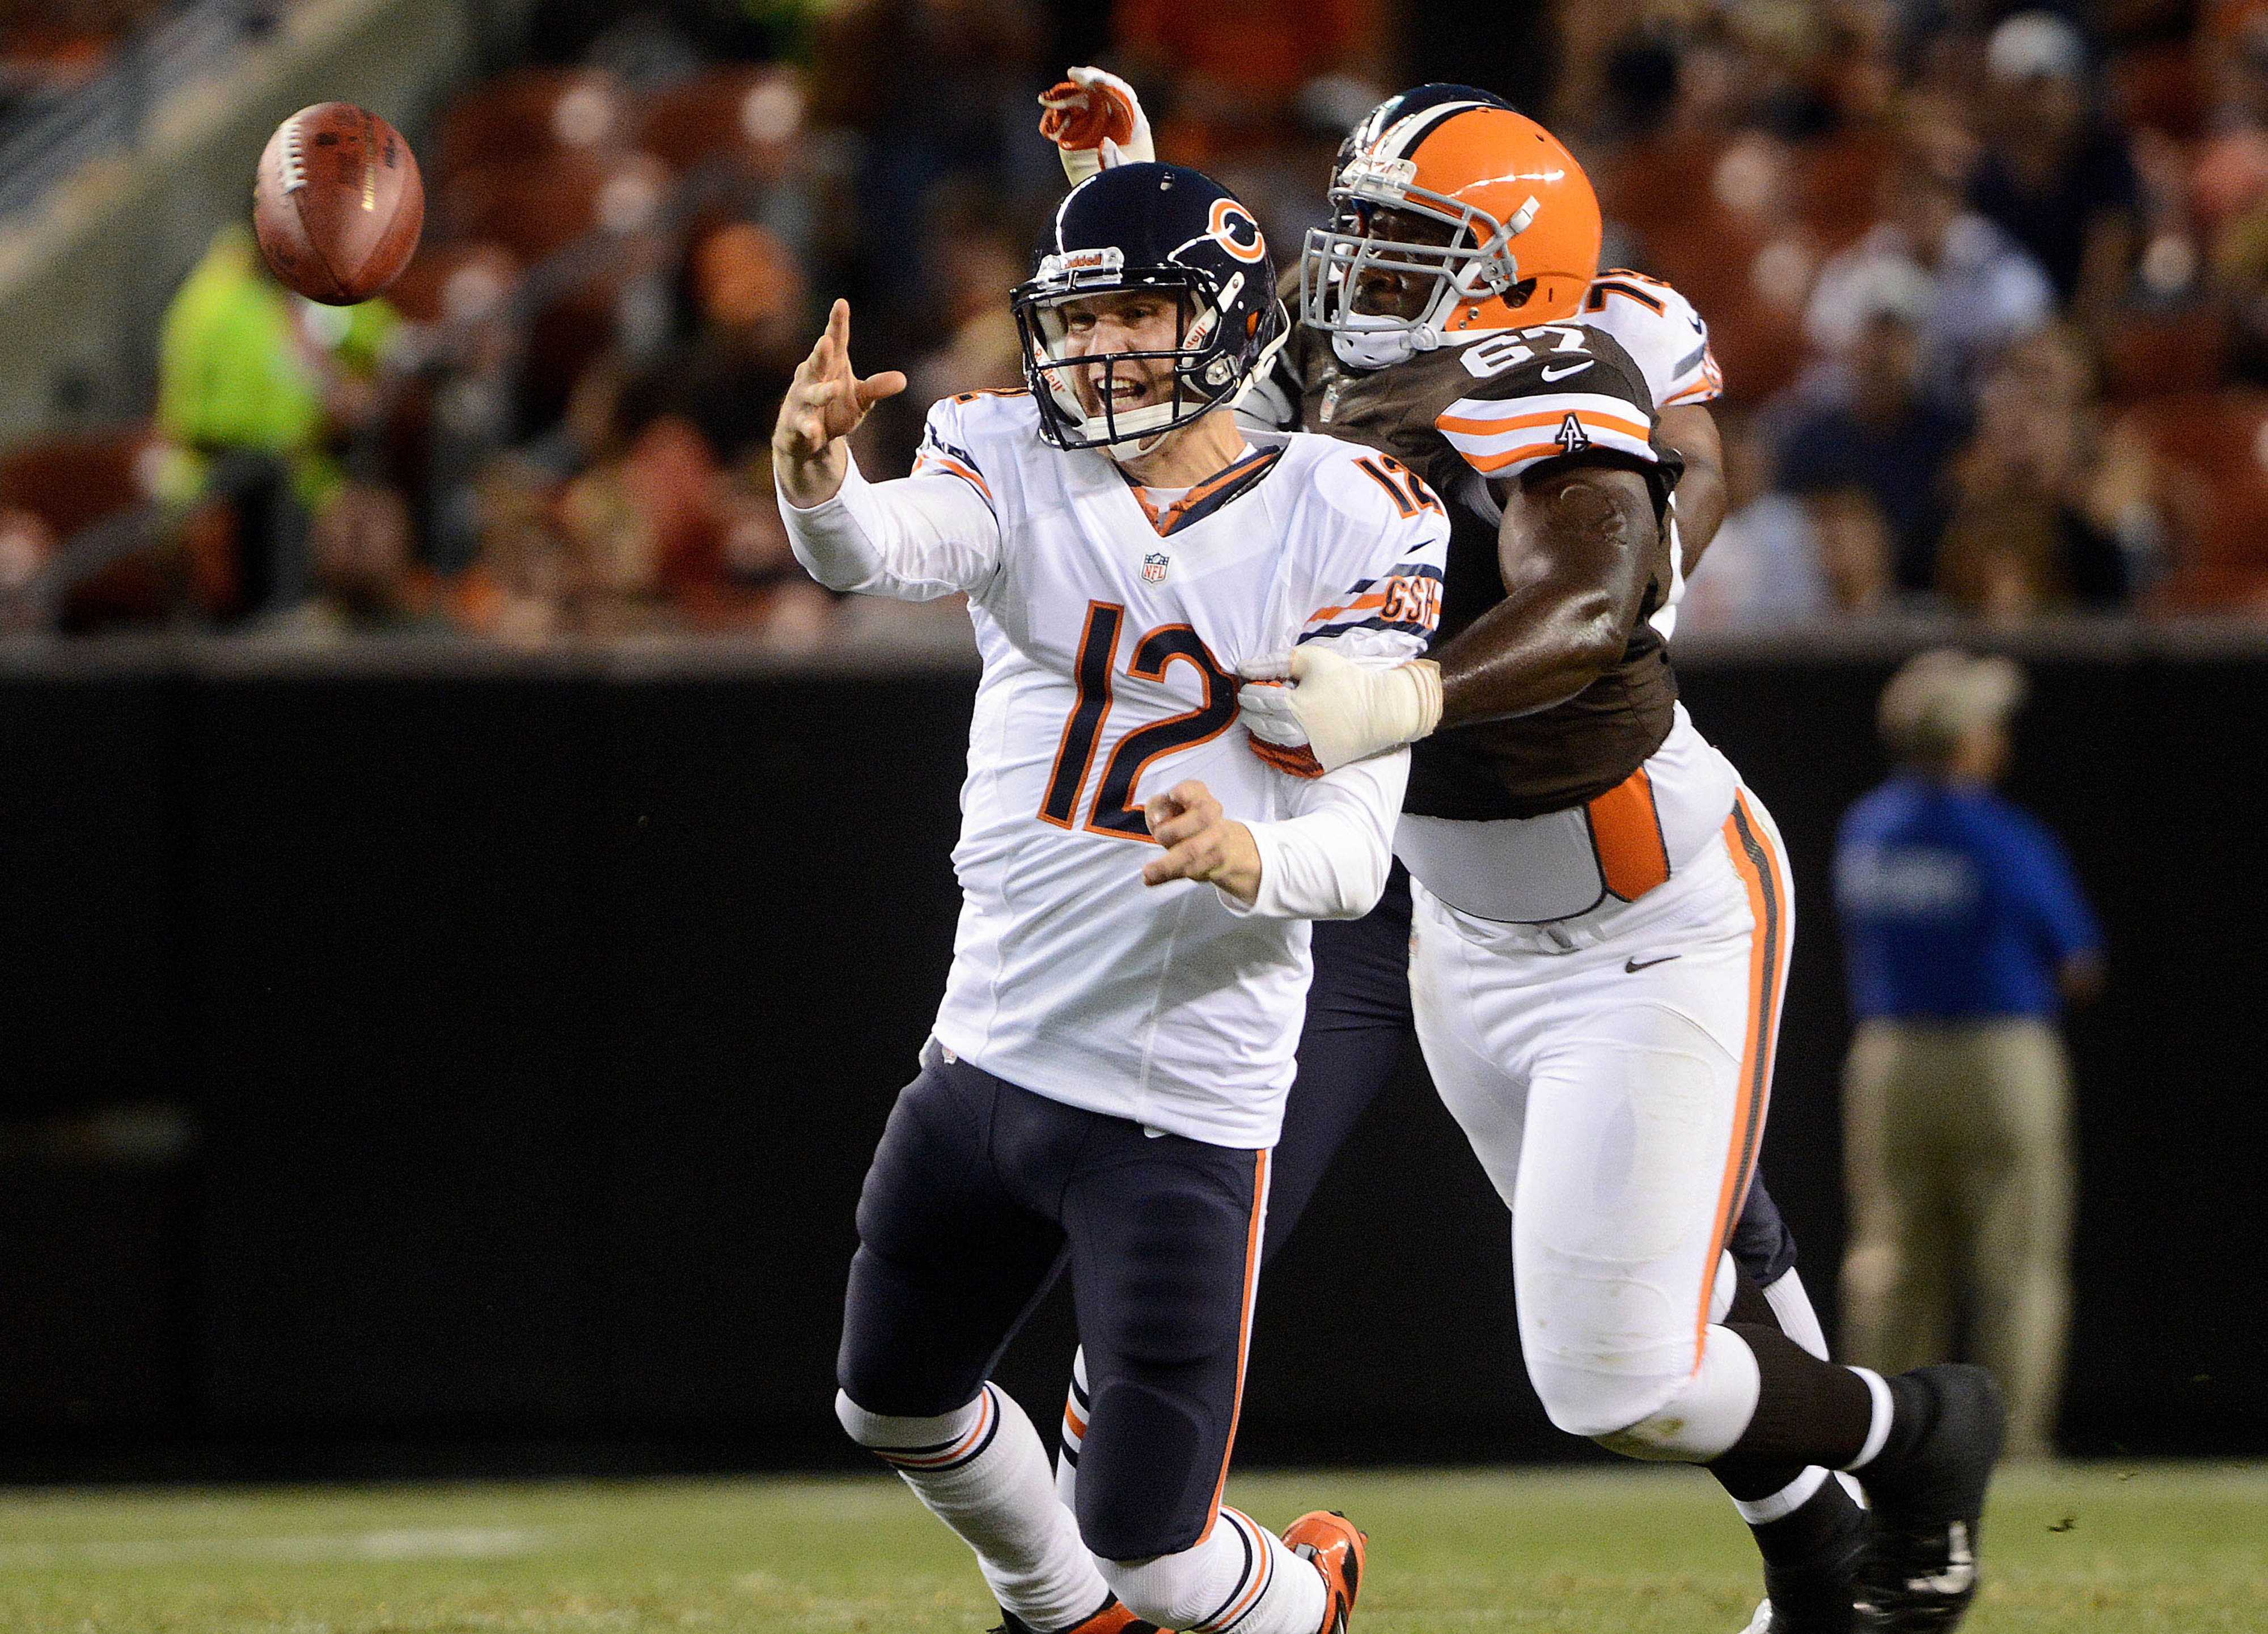 Pictured:  Josh McCown, just before he's torn limb from limb.